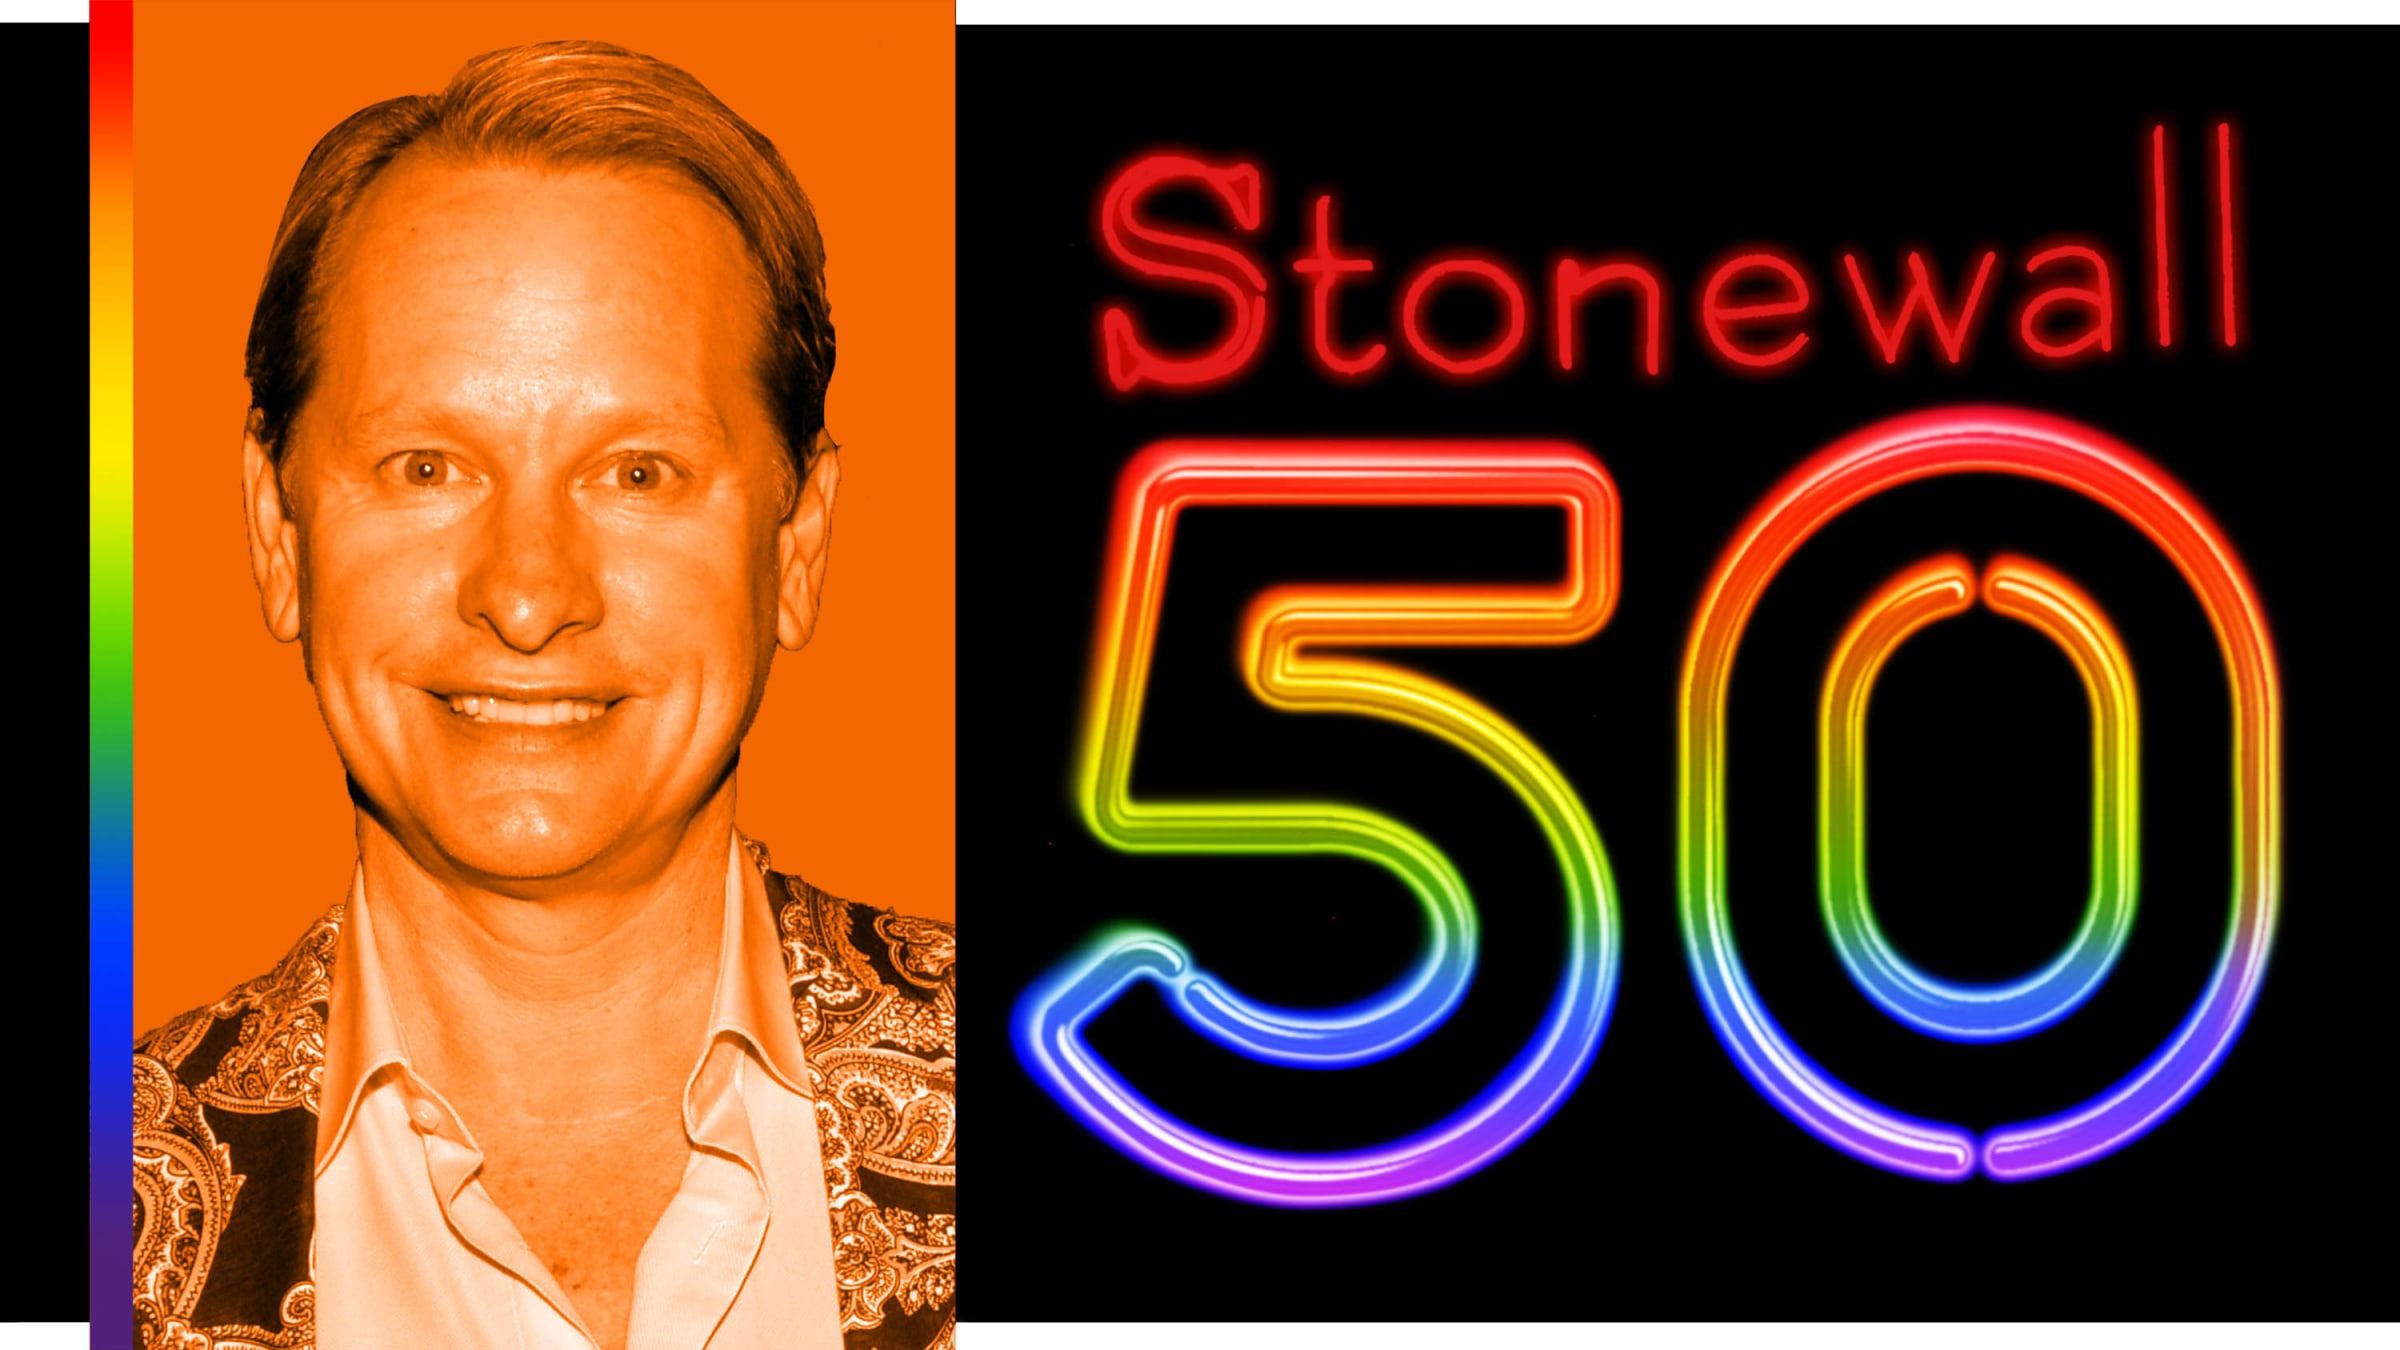 Carson Kressley: 'We Owe Stonewall's Rioters a Debt of Gratitude, and Remember the Diversity They Represented'